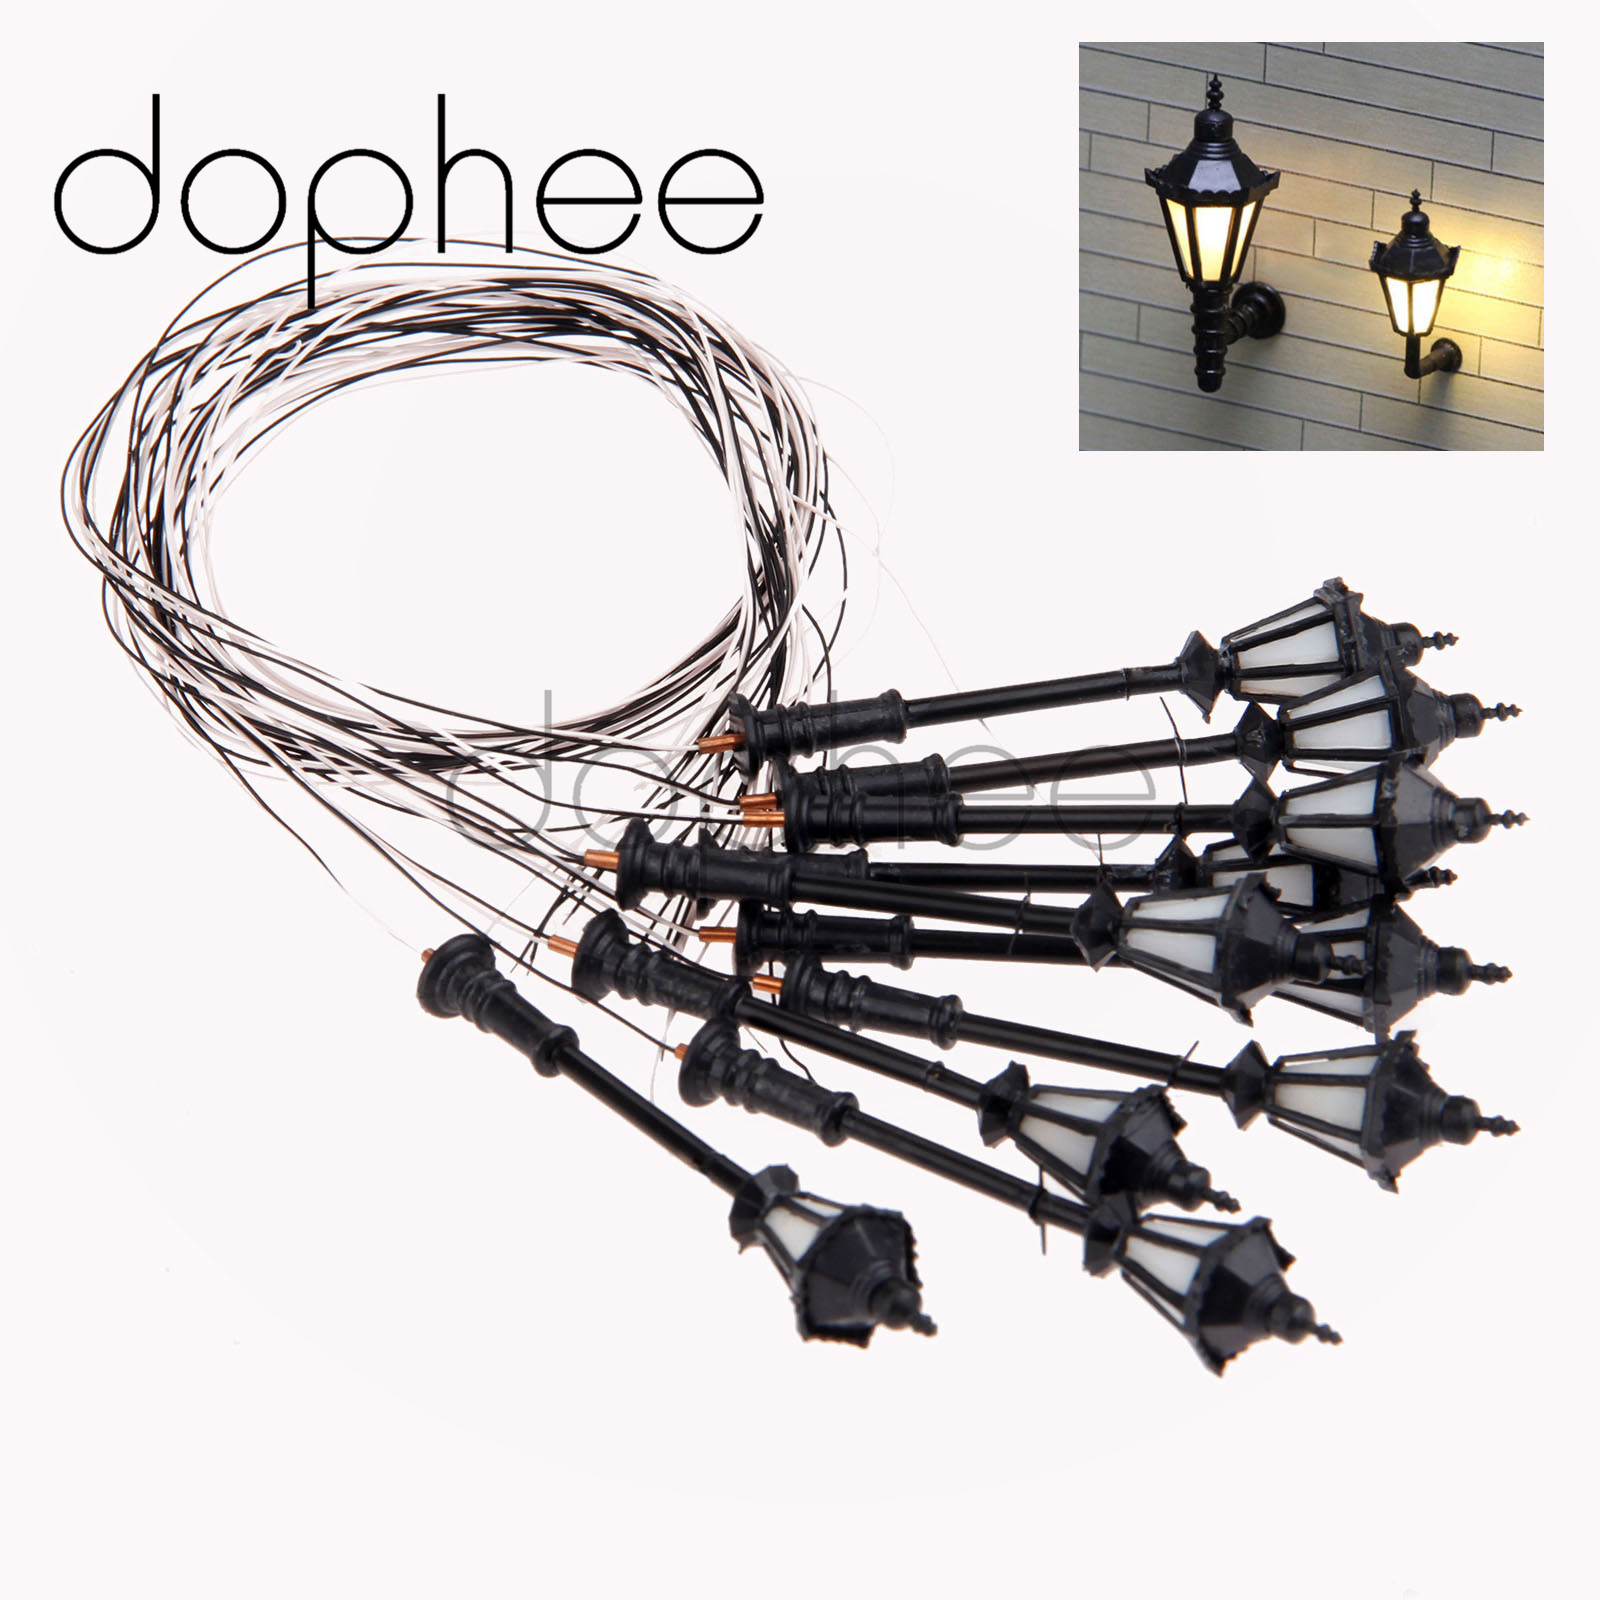 dophee 10pcs Model Architectural Courtyard Park LED Lights Lamppost 3V Single Head Scale 1:100 for Railway & Street Layout